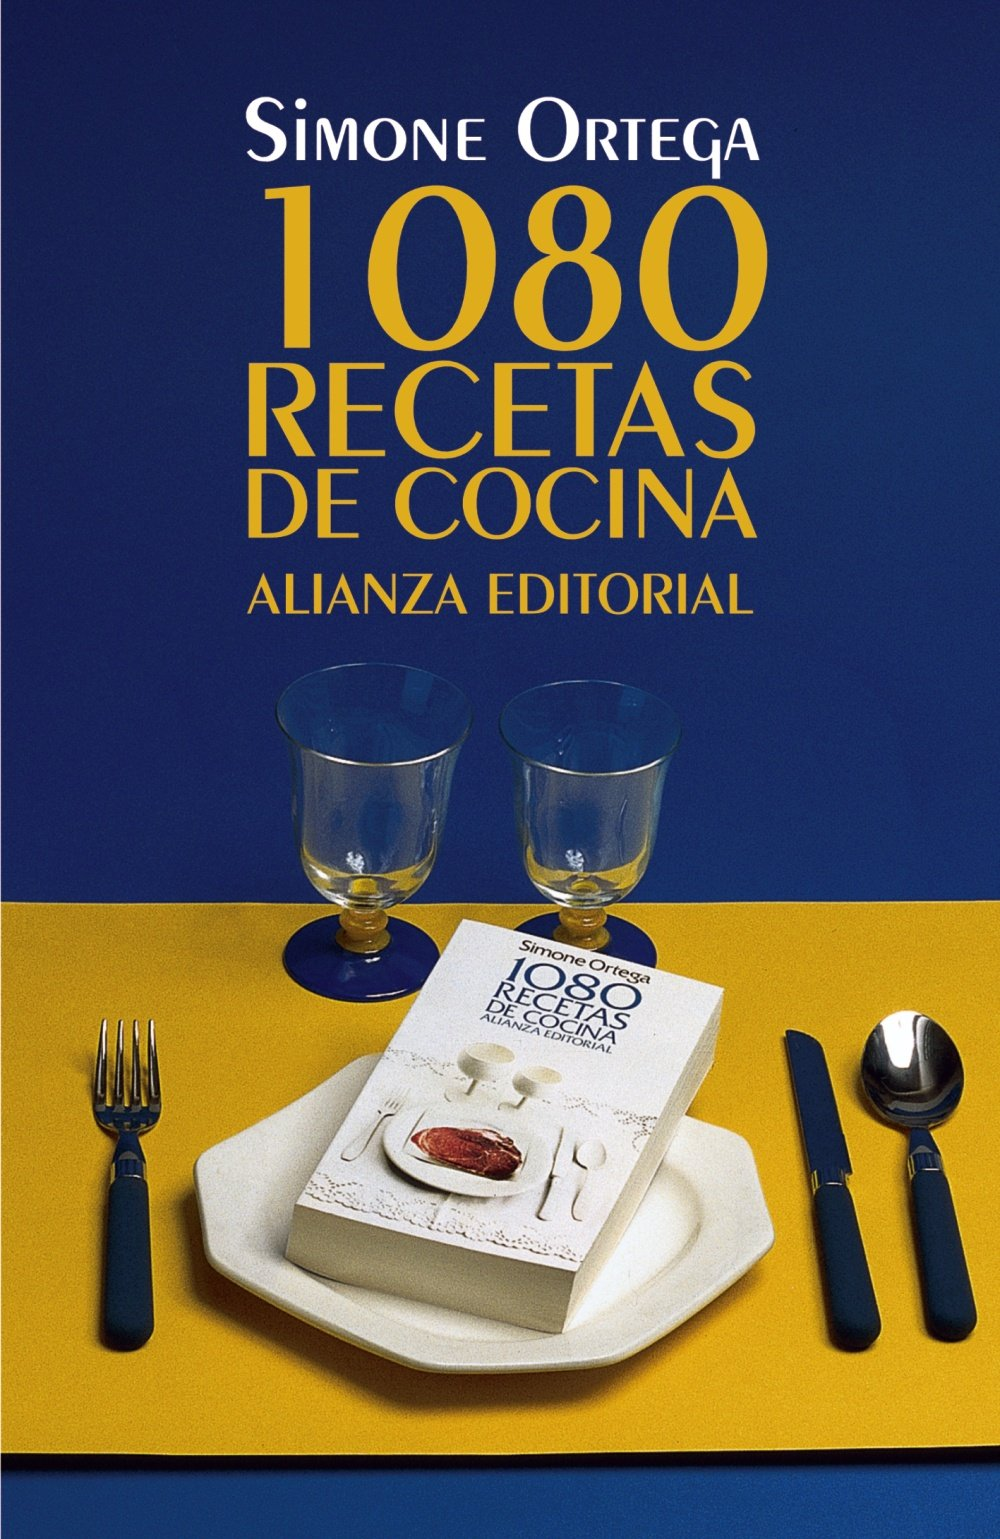 1080 recetas de cocina / 1080 Cooking Recipes (Spanish Edition): Simone  Ortega: 9788420691022: Amazon.com: Books